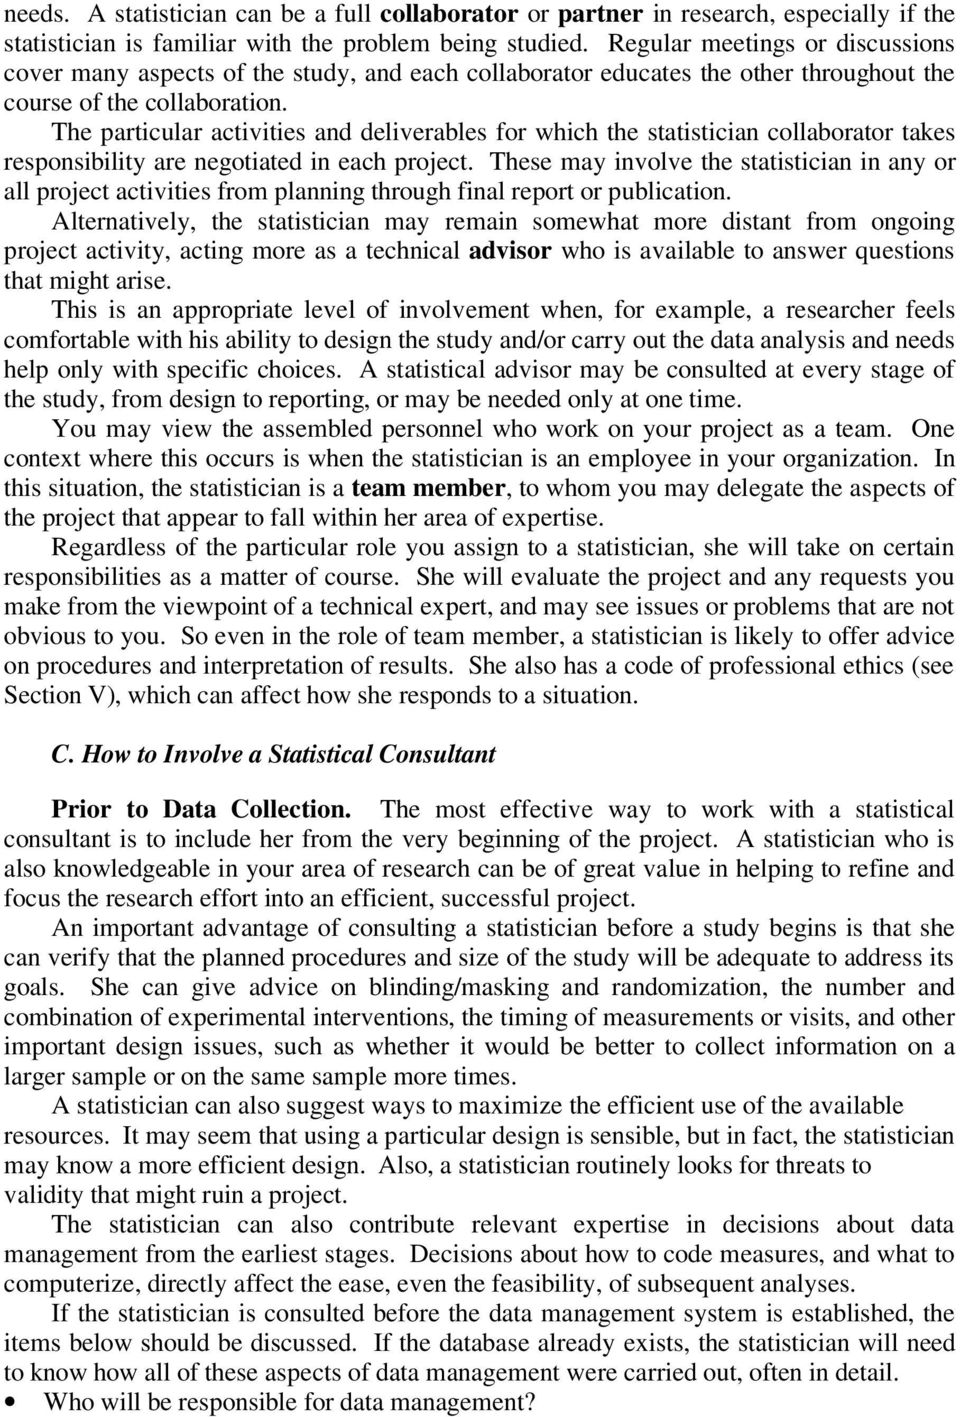 The particular activities and deliverables for which the statistician collaborator takes responsibility are negotiated in each project.